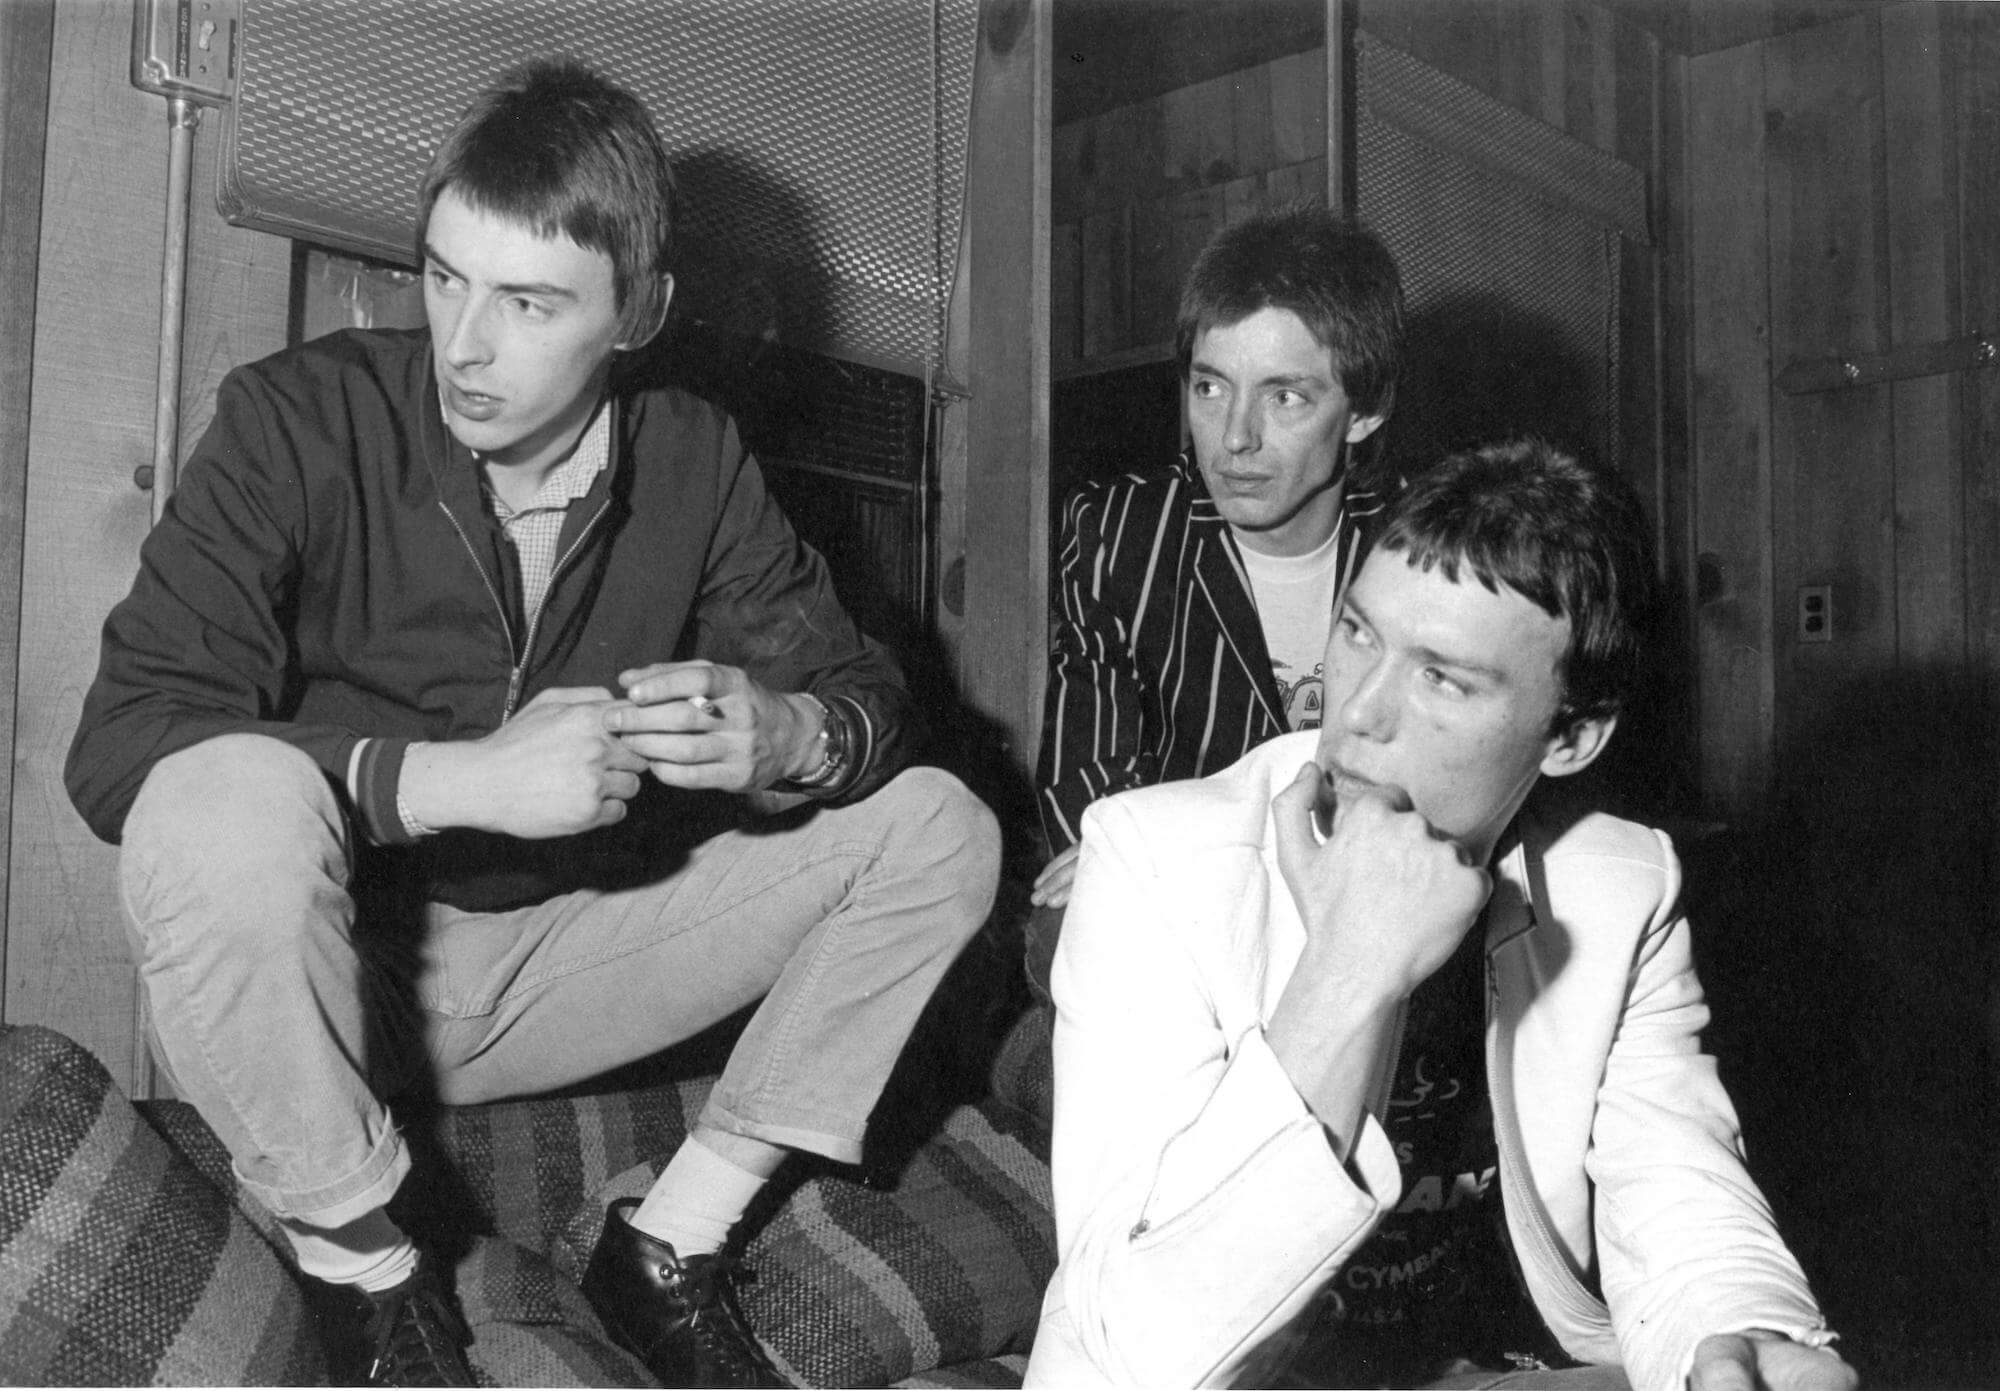 The Jam backstage at The Palladium, 1979